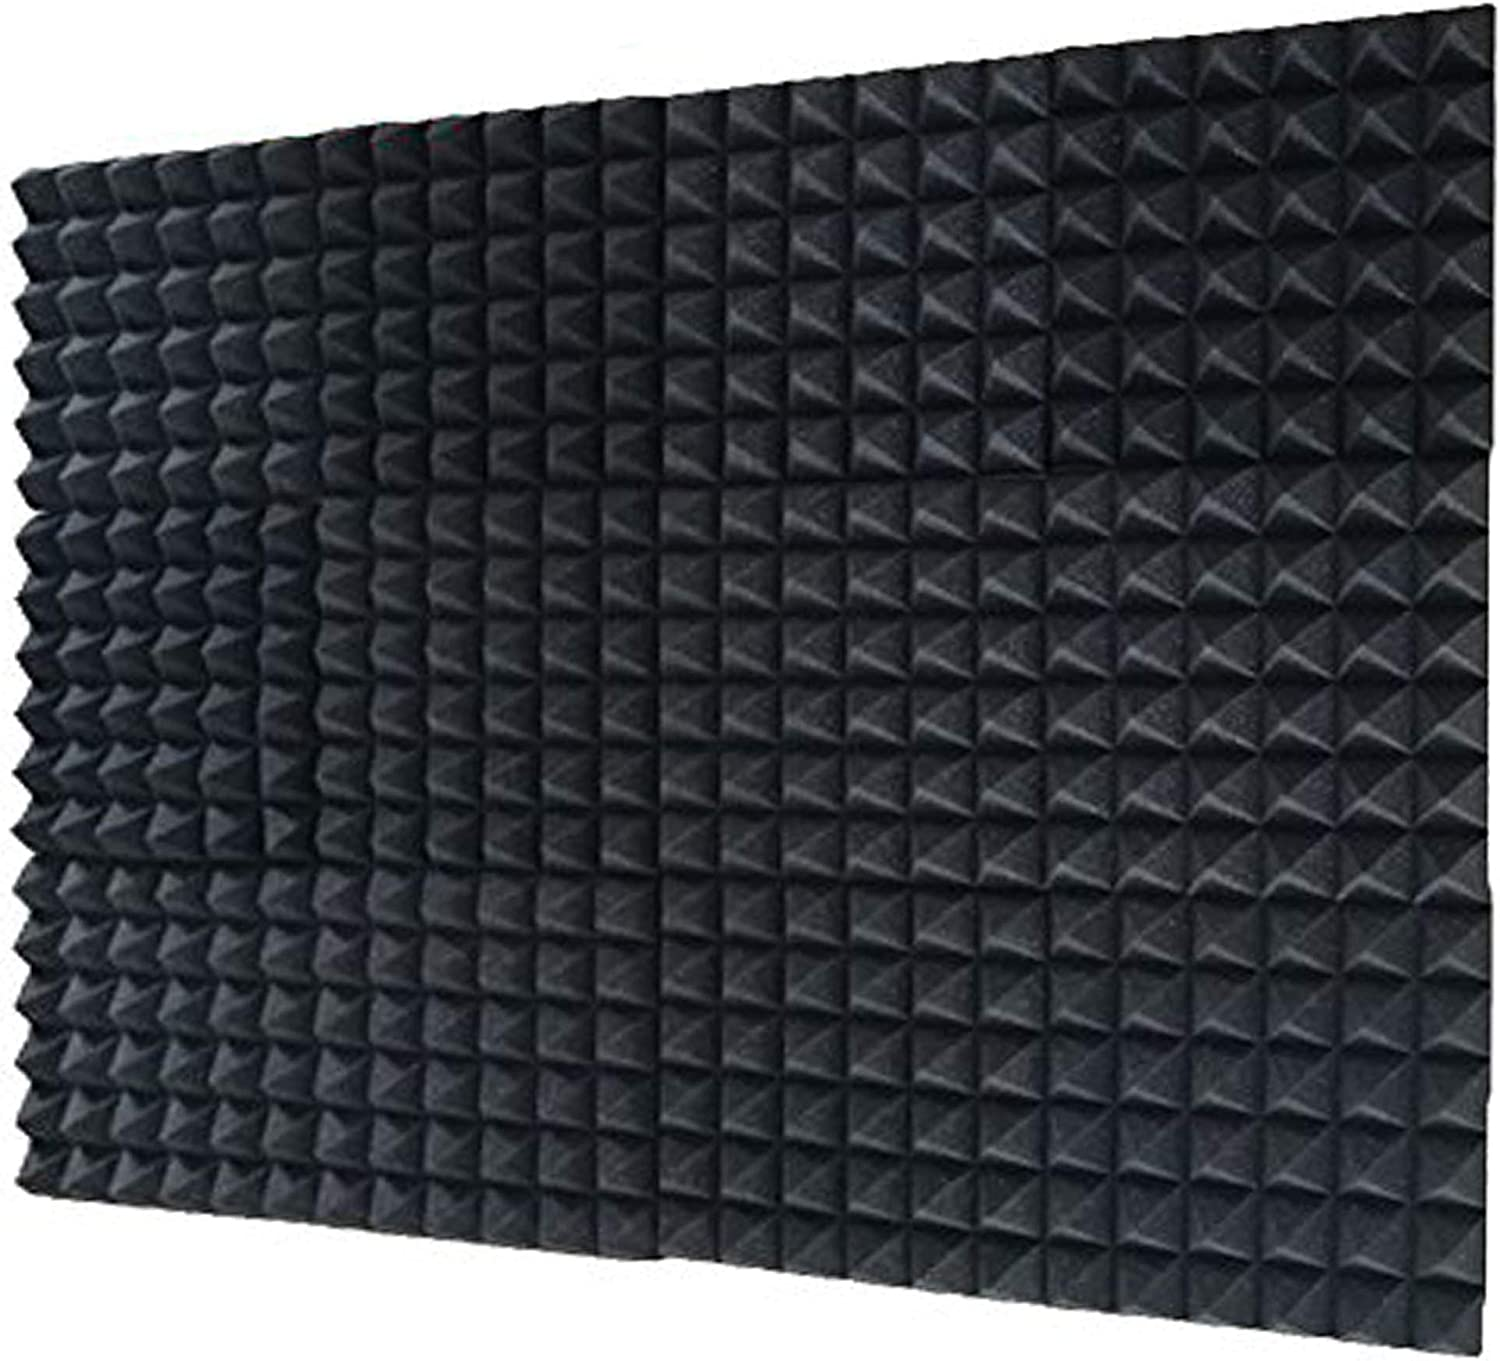 "12 Pack Set Acoustic Foam Panels, Studio Wedge Tiles, 2"" X 12"" X 12"" Acoustic Foam Sound Absorption Pyramid Studio Treatment Wall Panels 714OhdmN3DL"